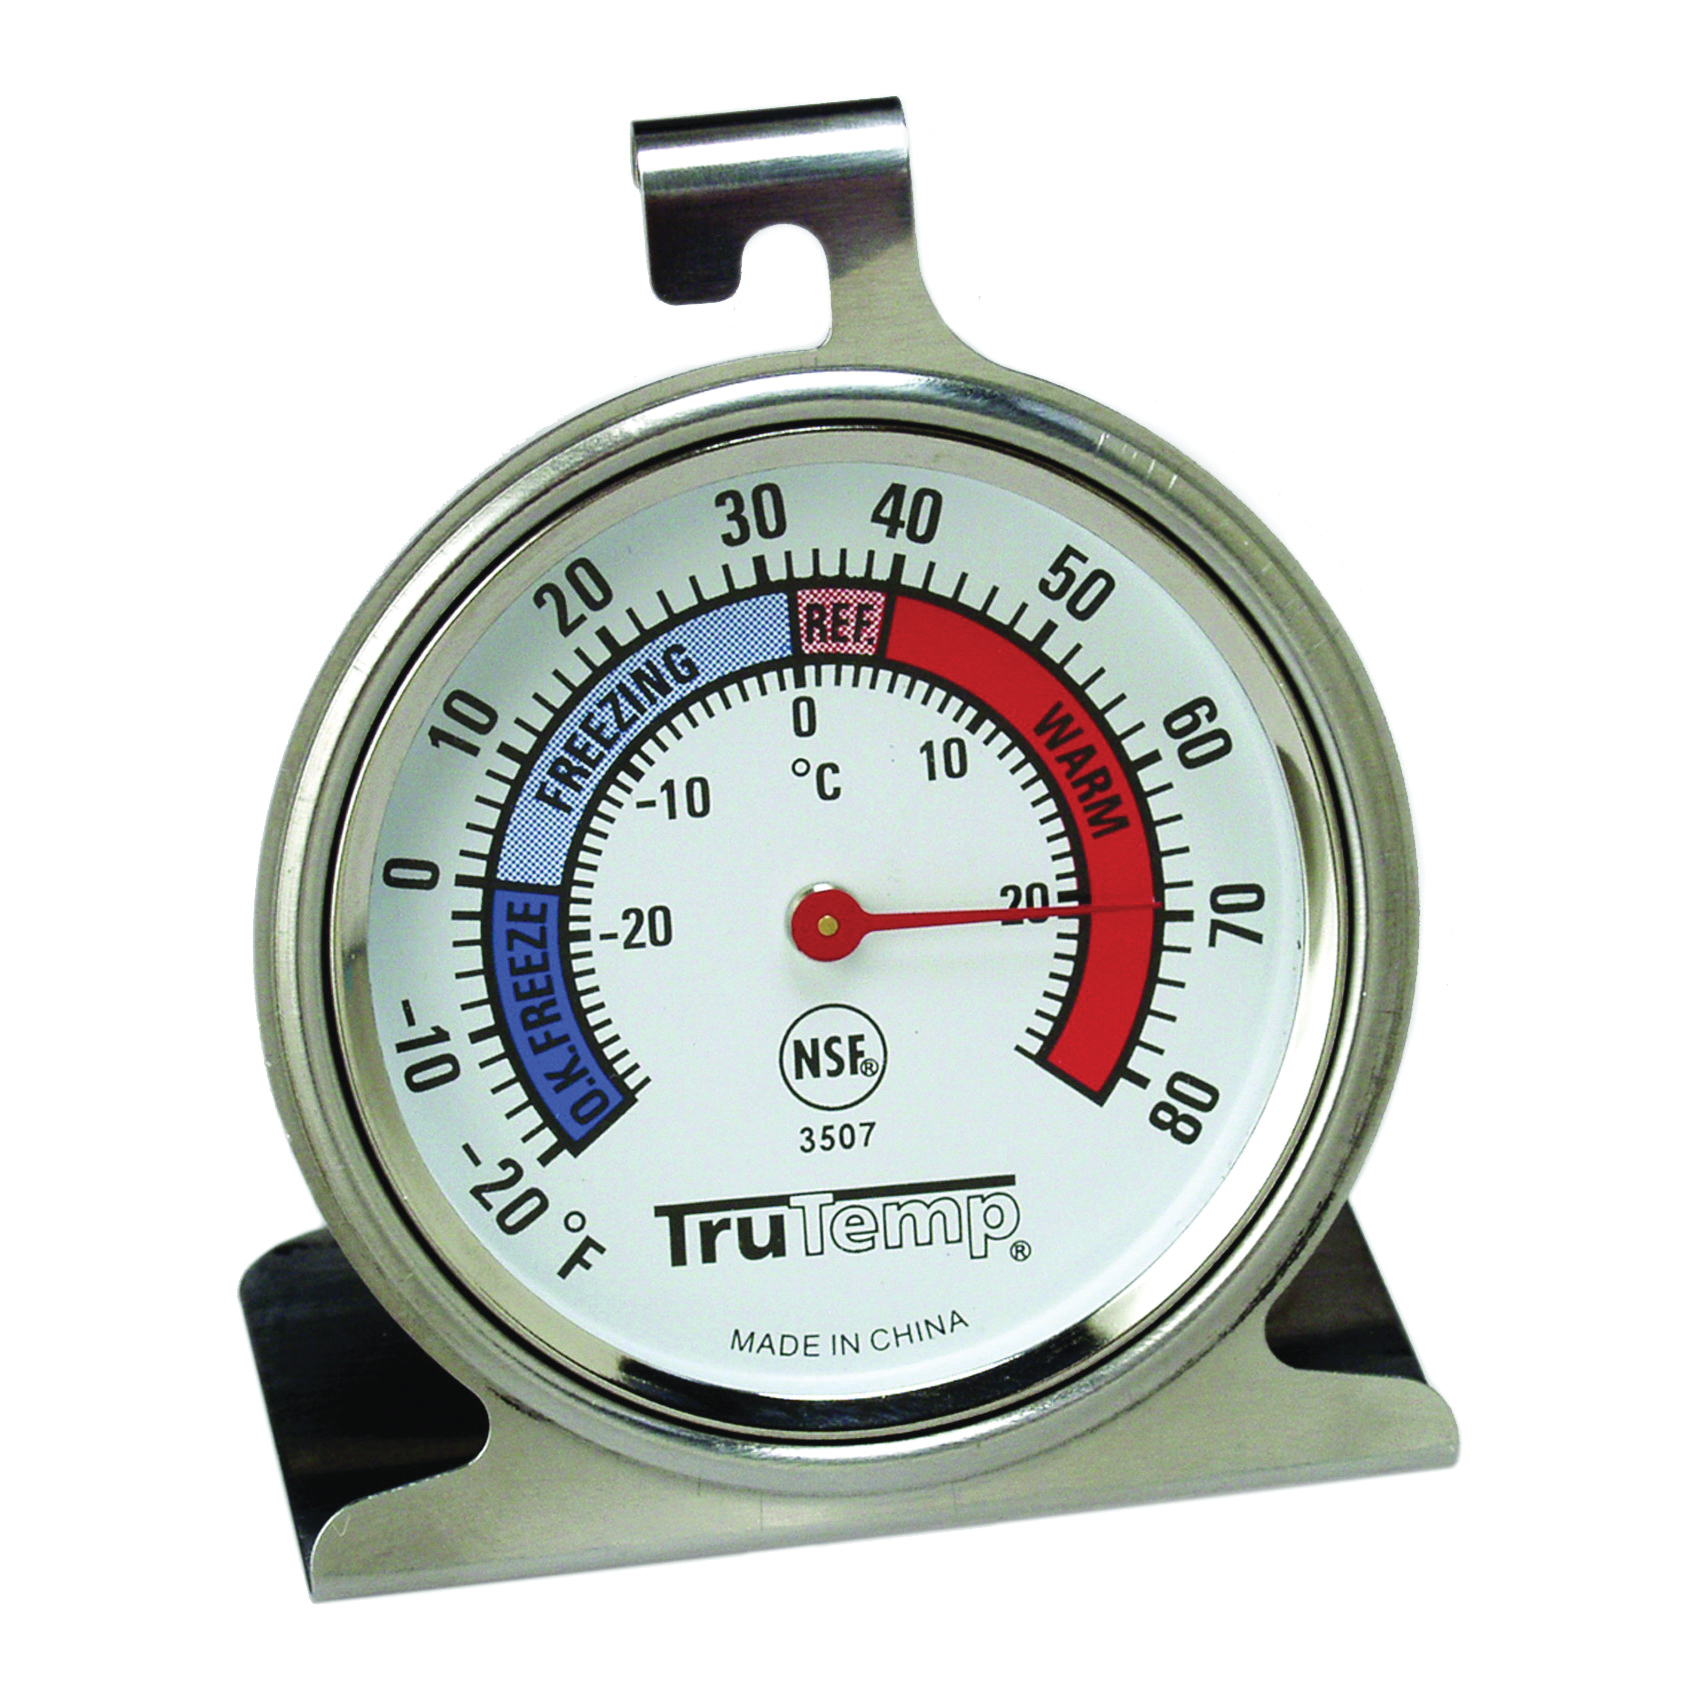 Picture of Taylor 3507 Refrigerator/Freezer Dial Thermometer, -20 to 80 deg F, Analog Display, Gray